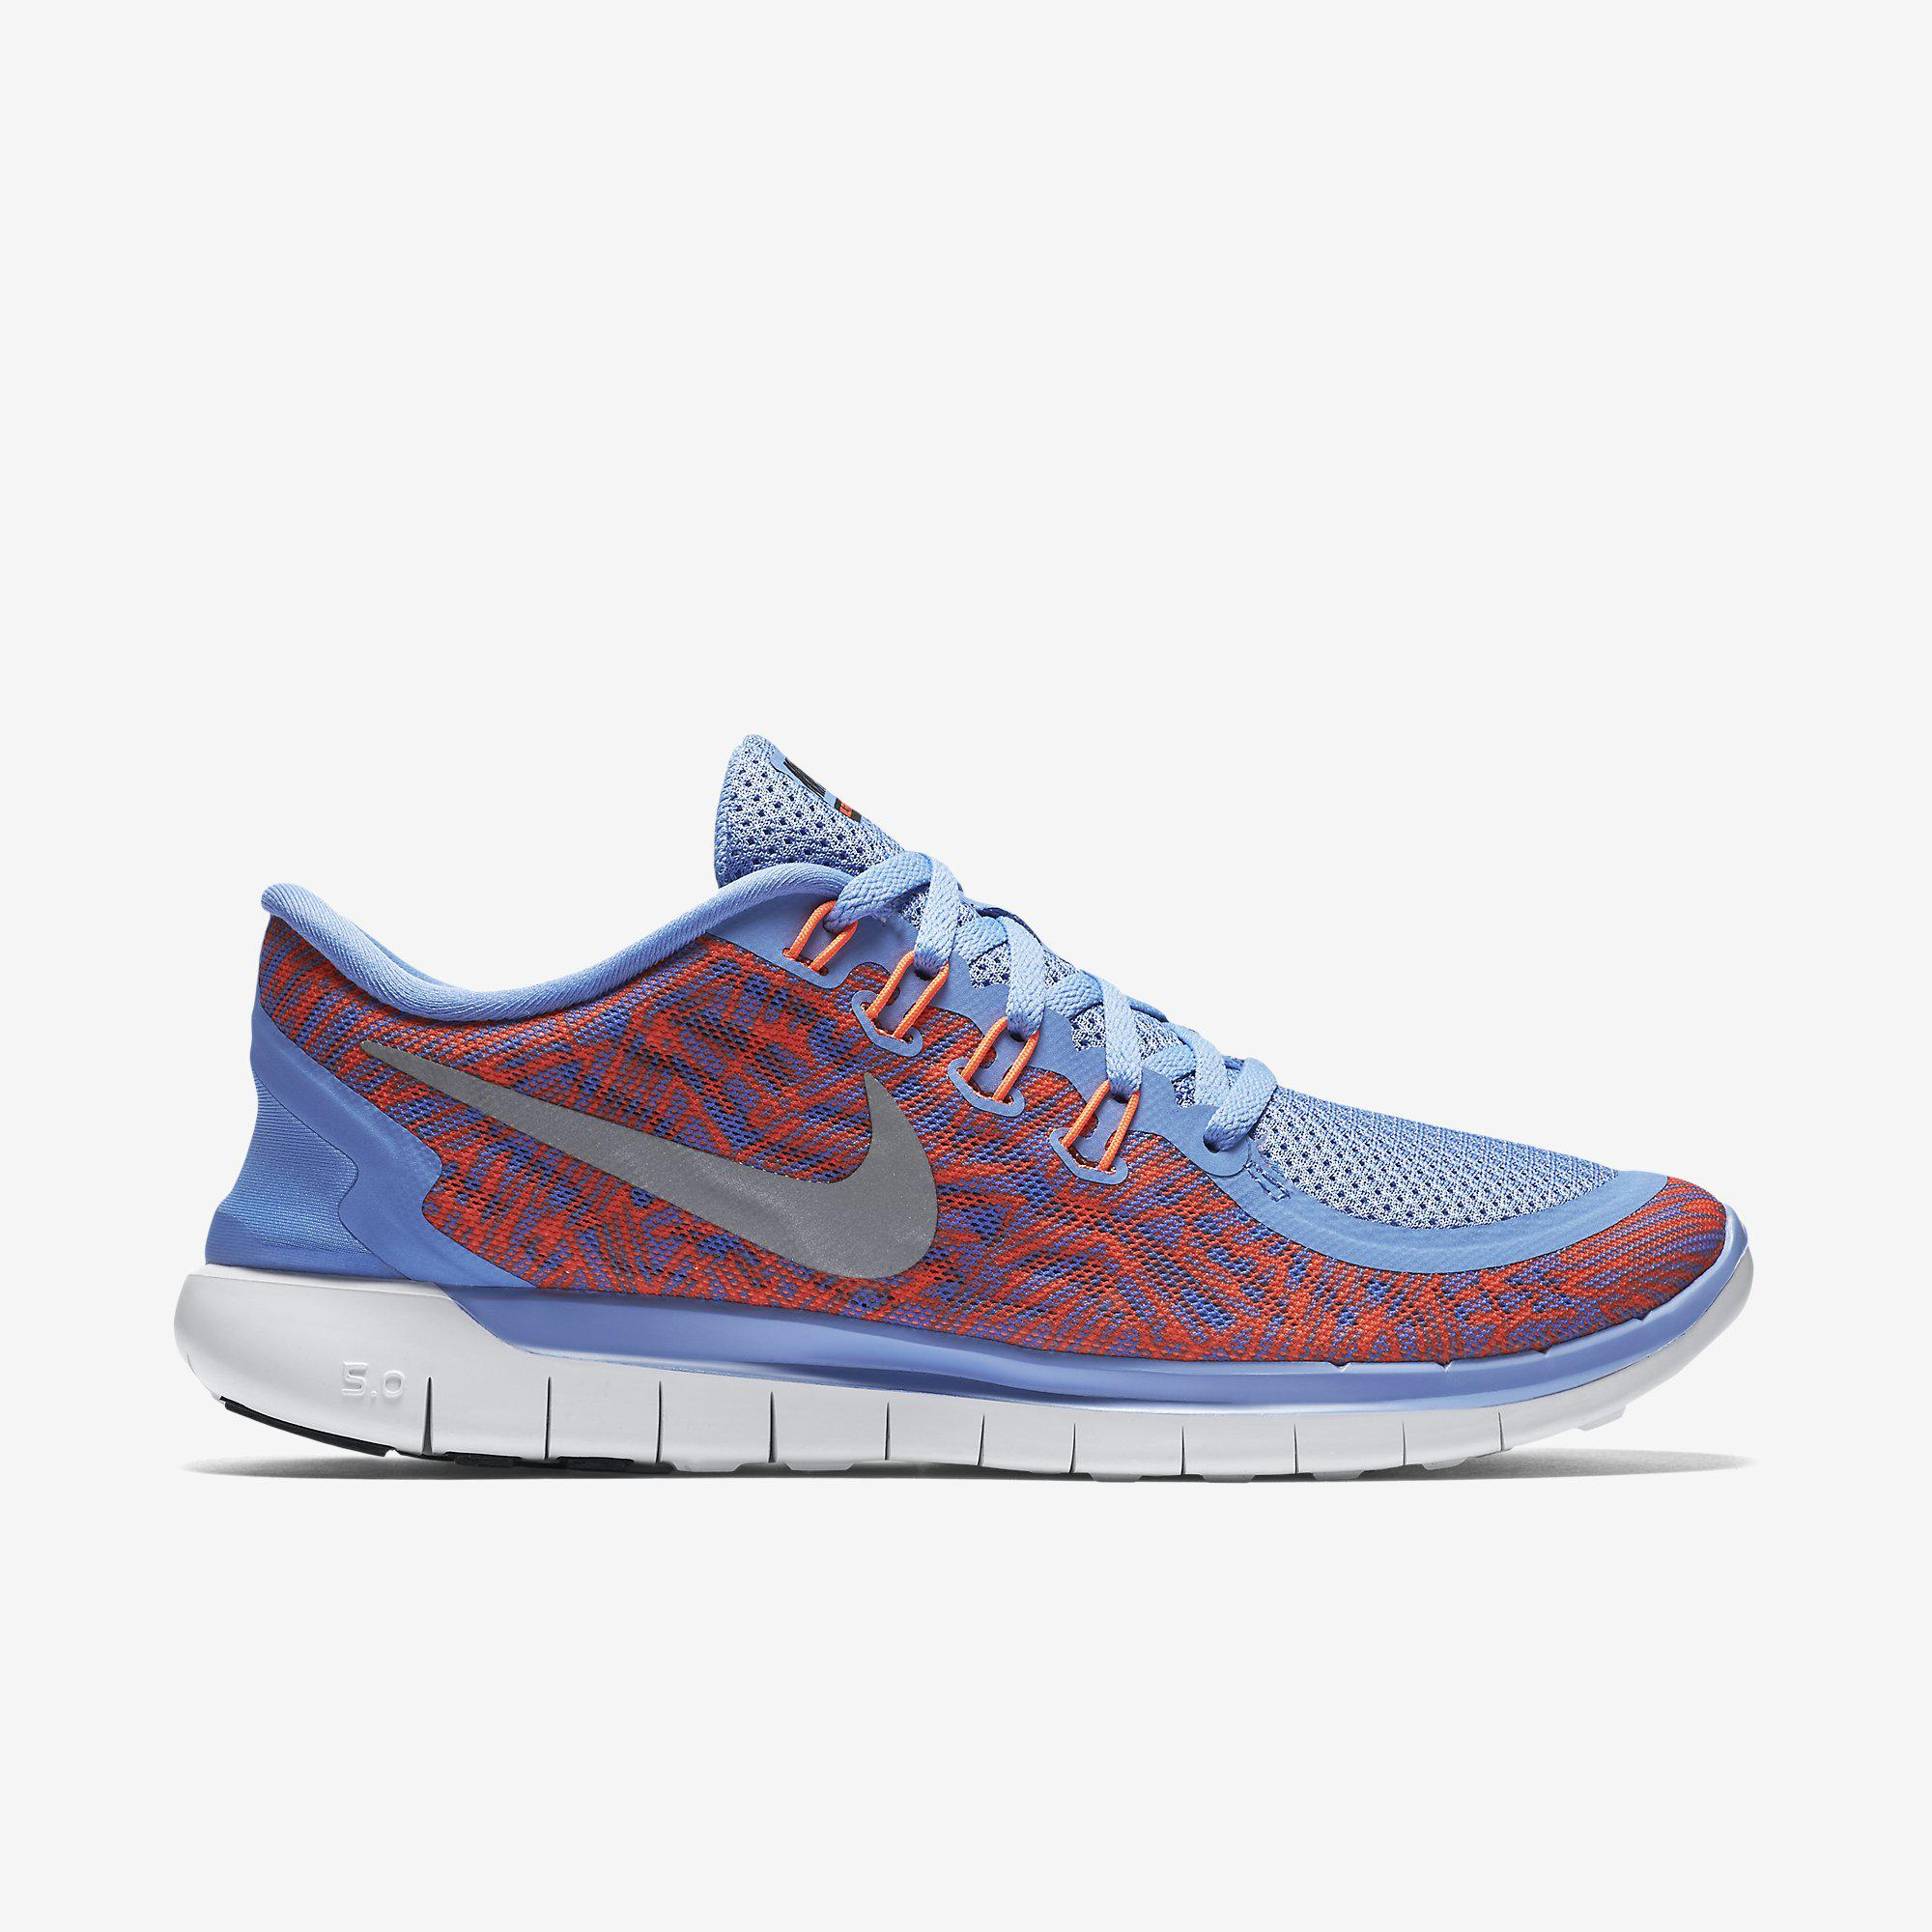 e987e69b4c6d Nike Womens Free 5.0 Print Running Shoes - Chalk Blue - Tennisnuts.com